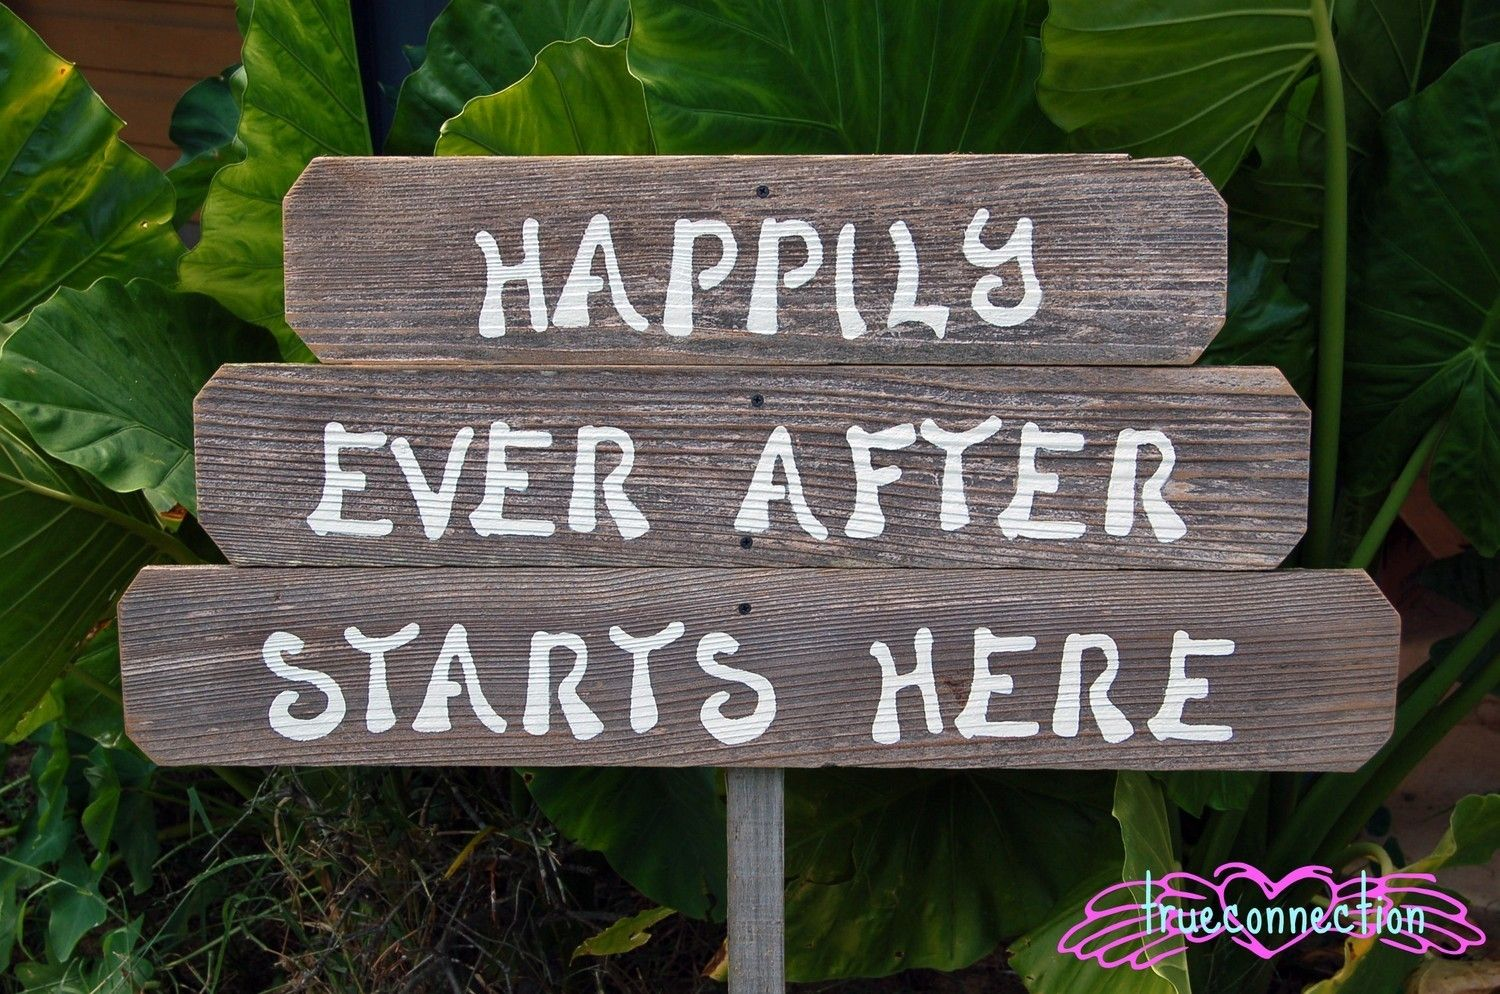 Happily Ever After Starts Here Wood Wedding Signs Rustic Wedding Eco Wedding Reception Signs